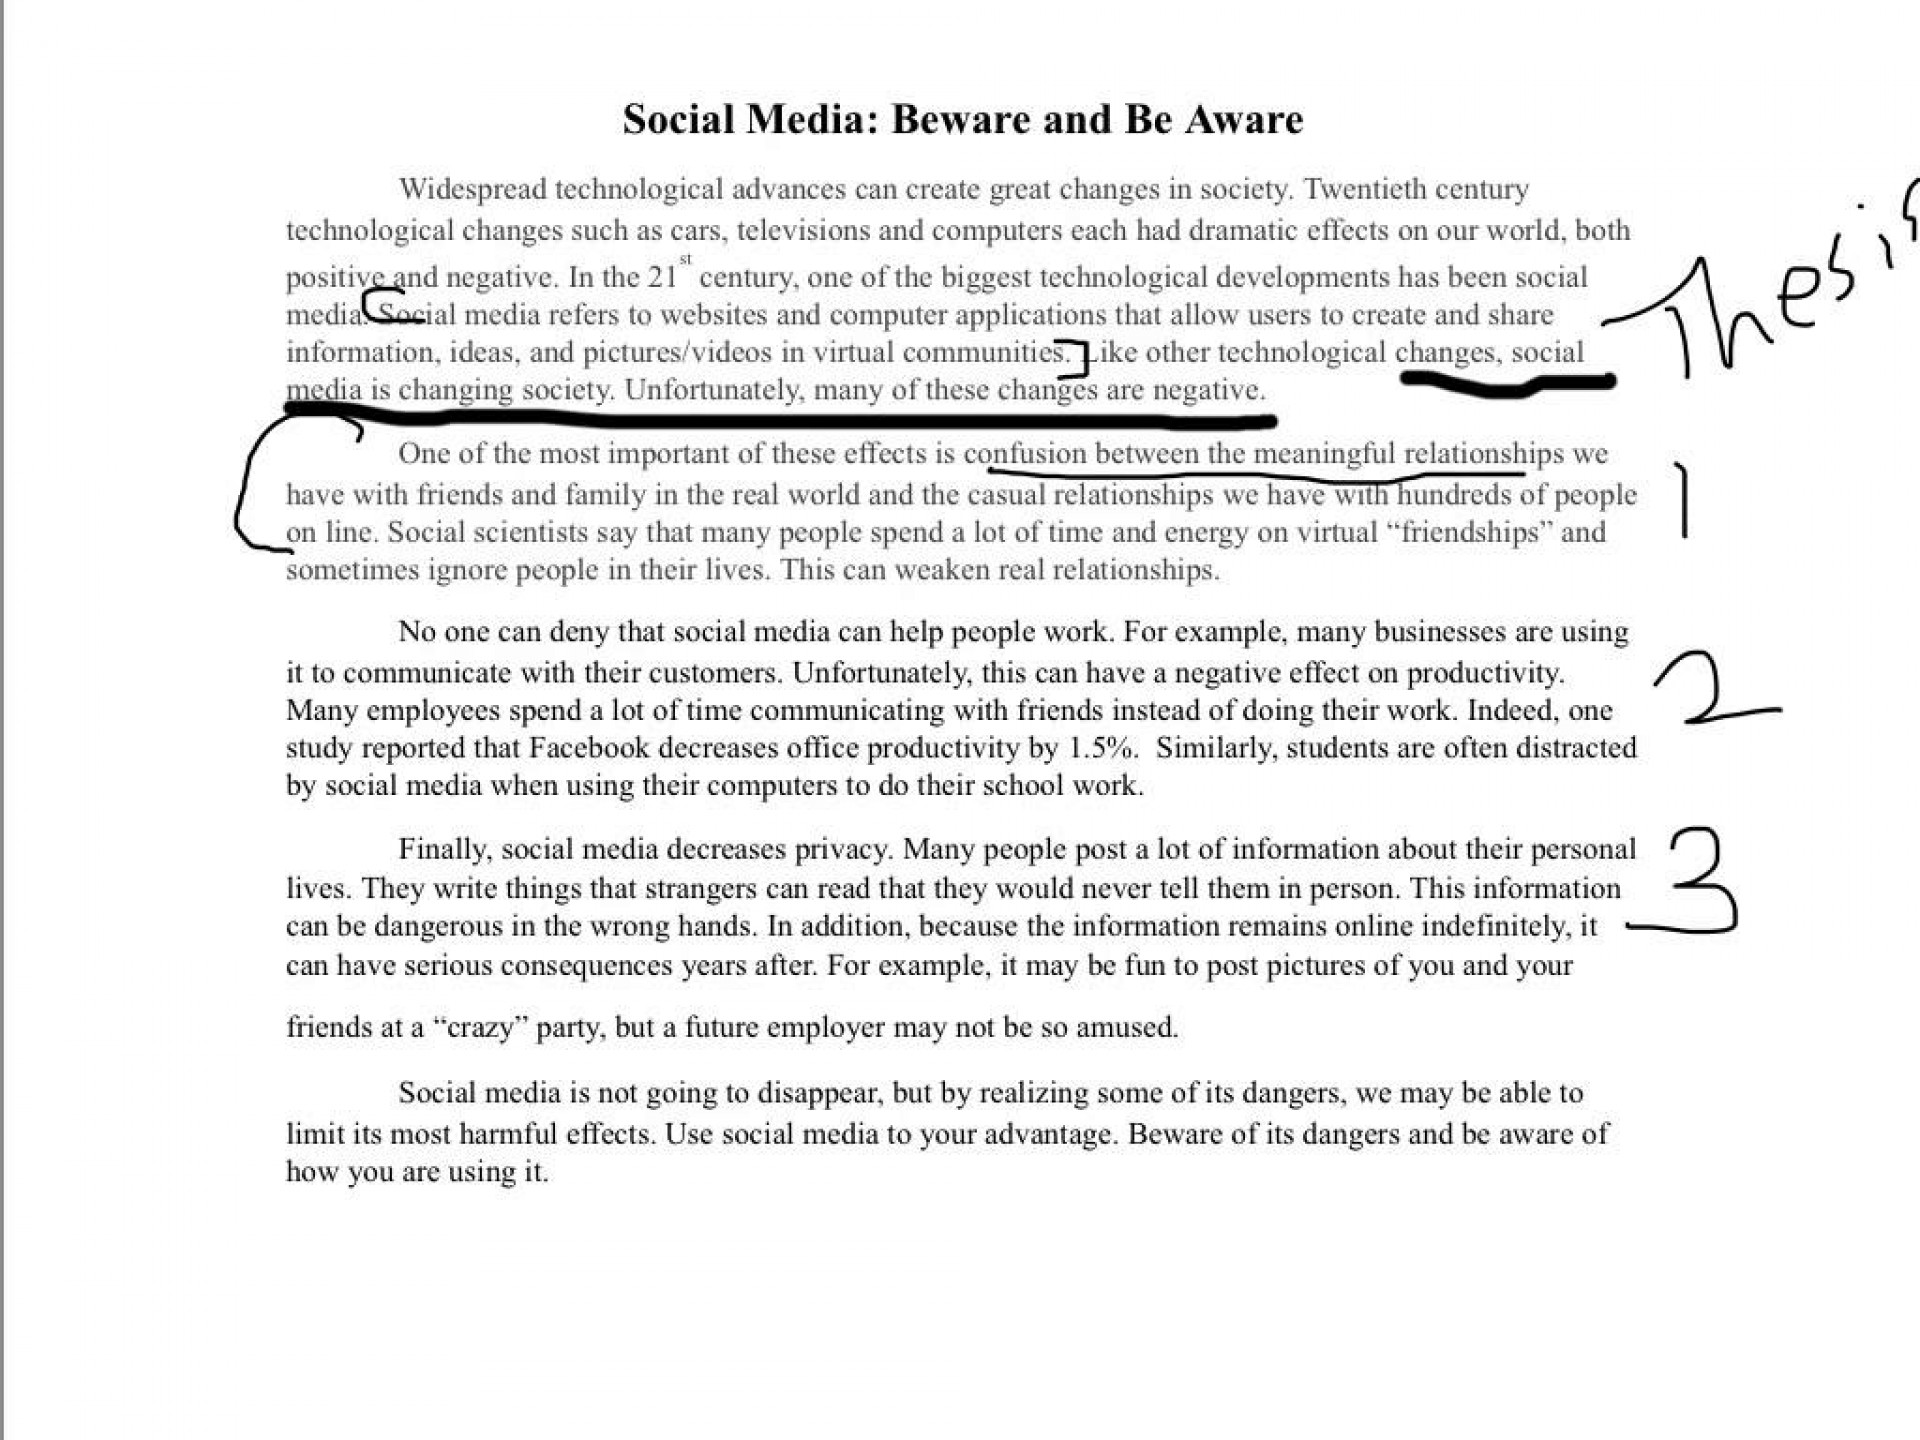 001 Social Media Example Essay In Pakistan Advantages Disadvantages Sosial Literacy Influence About Introduction And Networking Coverage Society Rules The World Freeentative Bias Amazing Argumentative Thesis Conclusion Addiction 1920